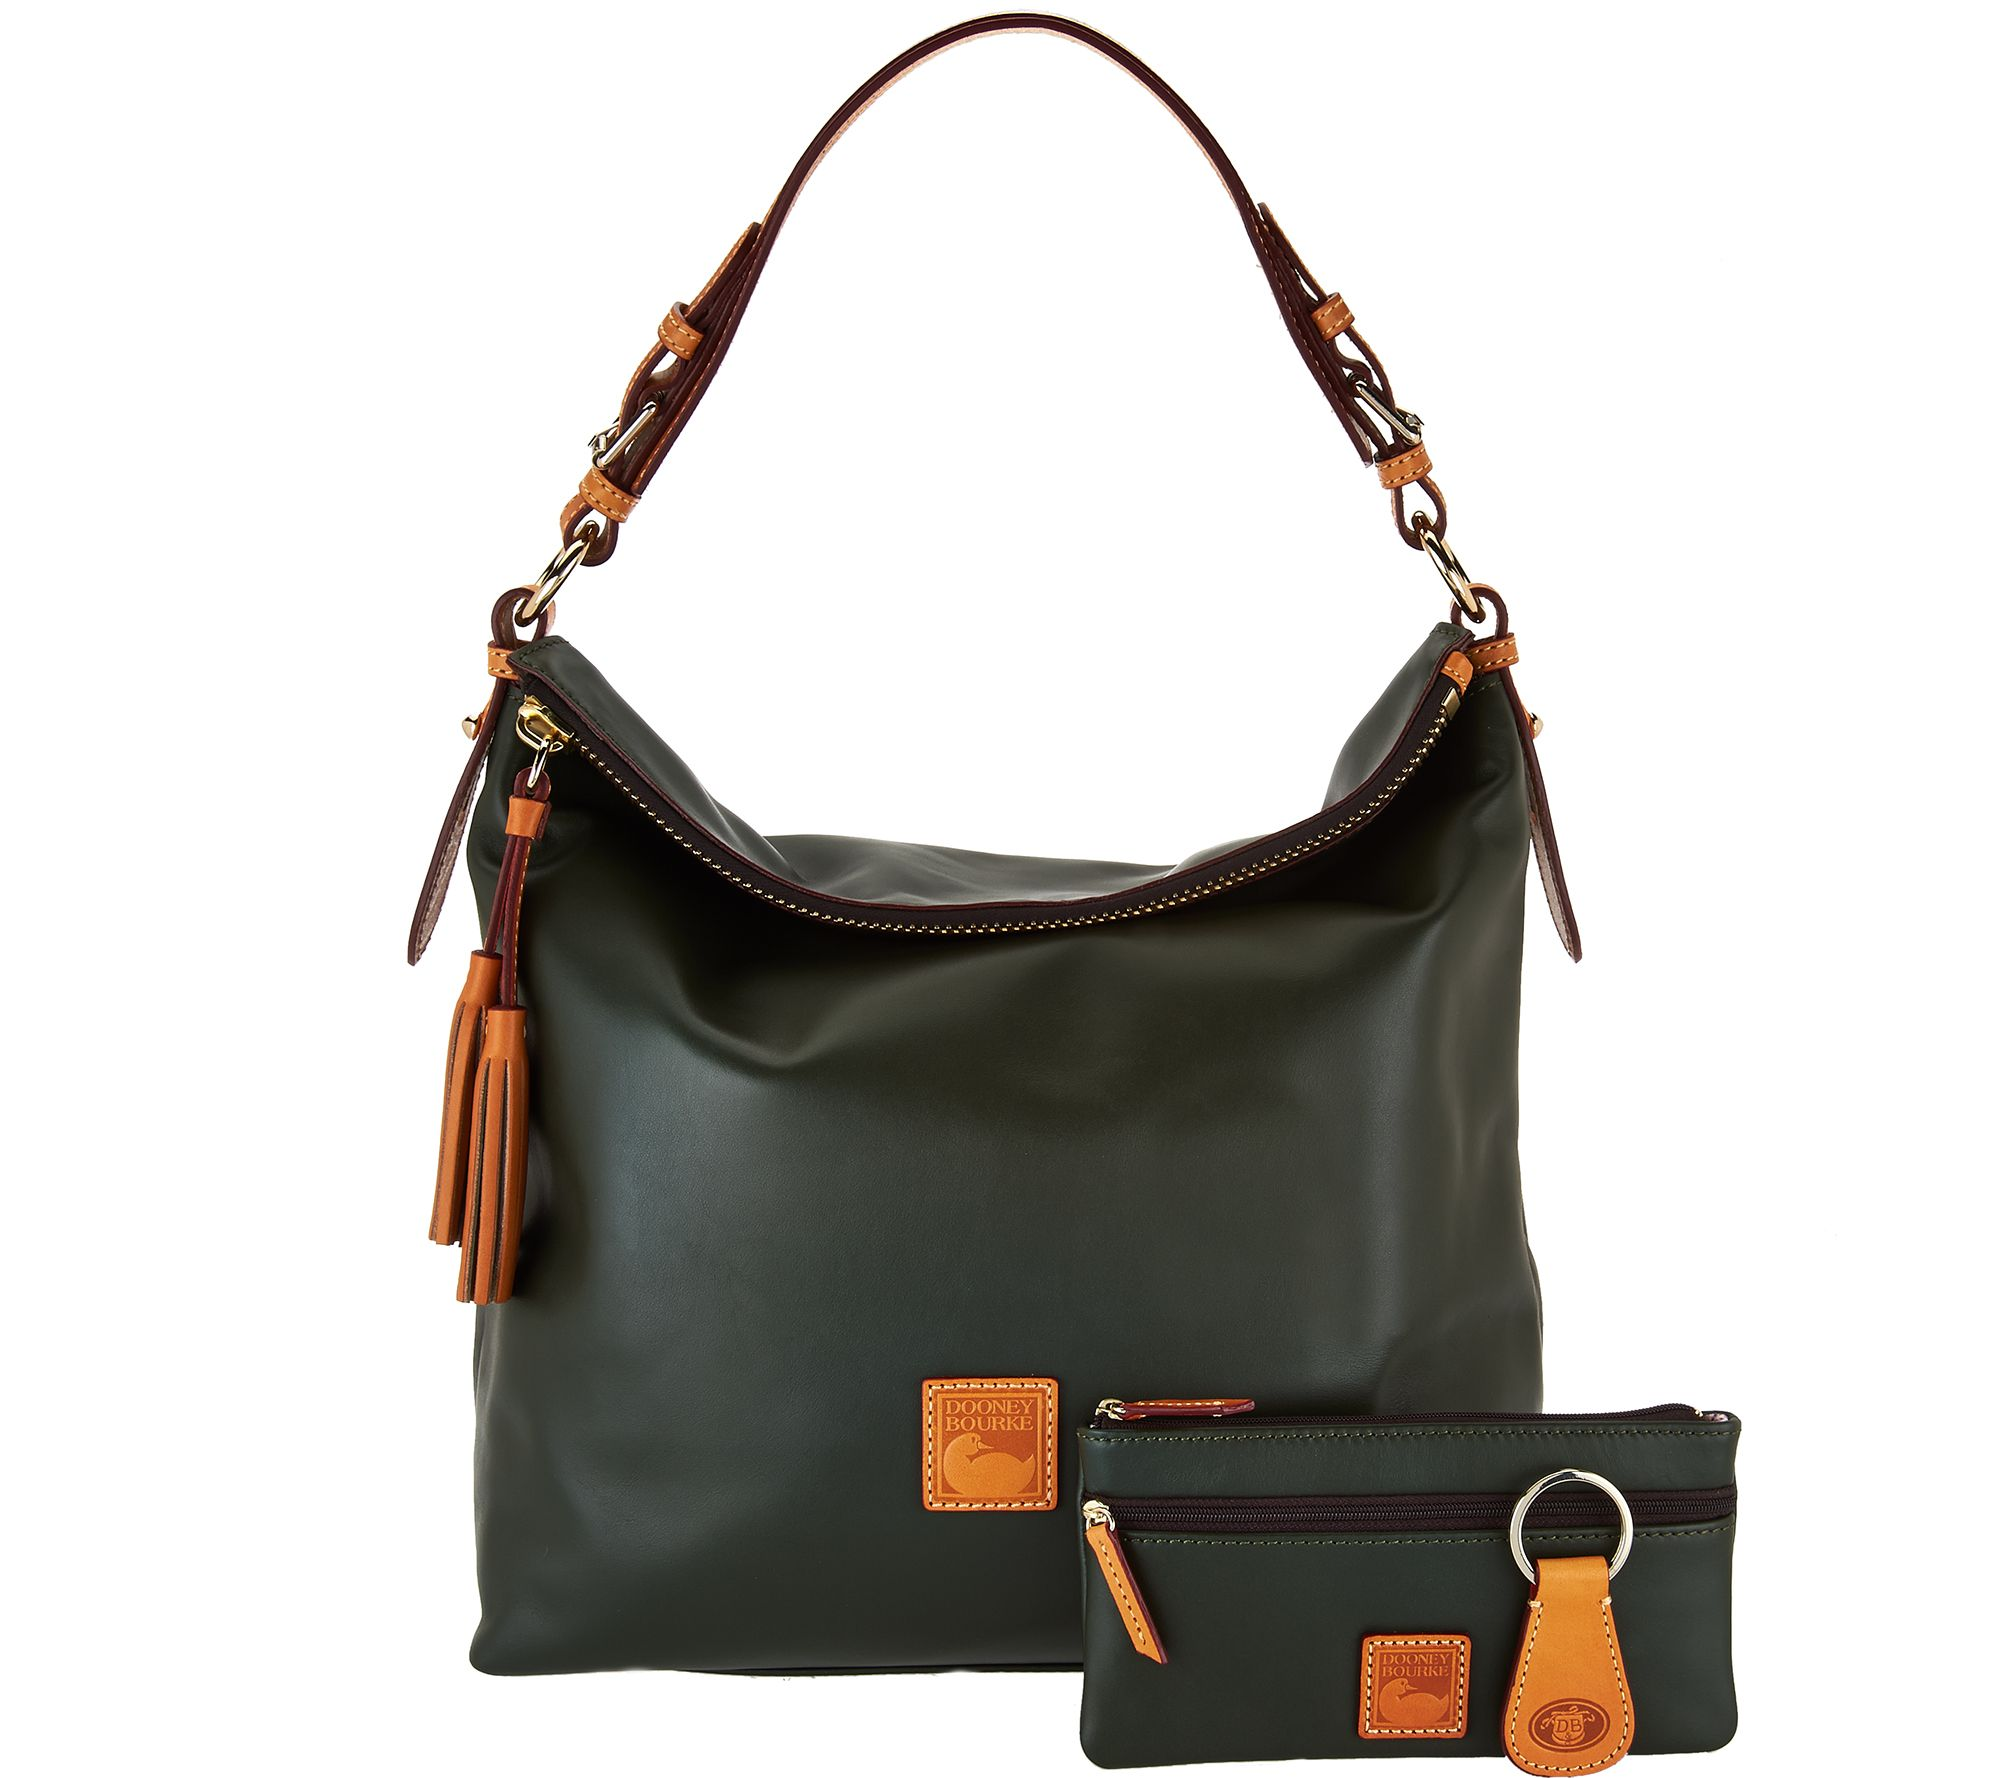 7bd7265c15 Dooney   Bourke Smooth Leather Hobo with Accessories - Page 1 — QVC.com